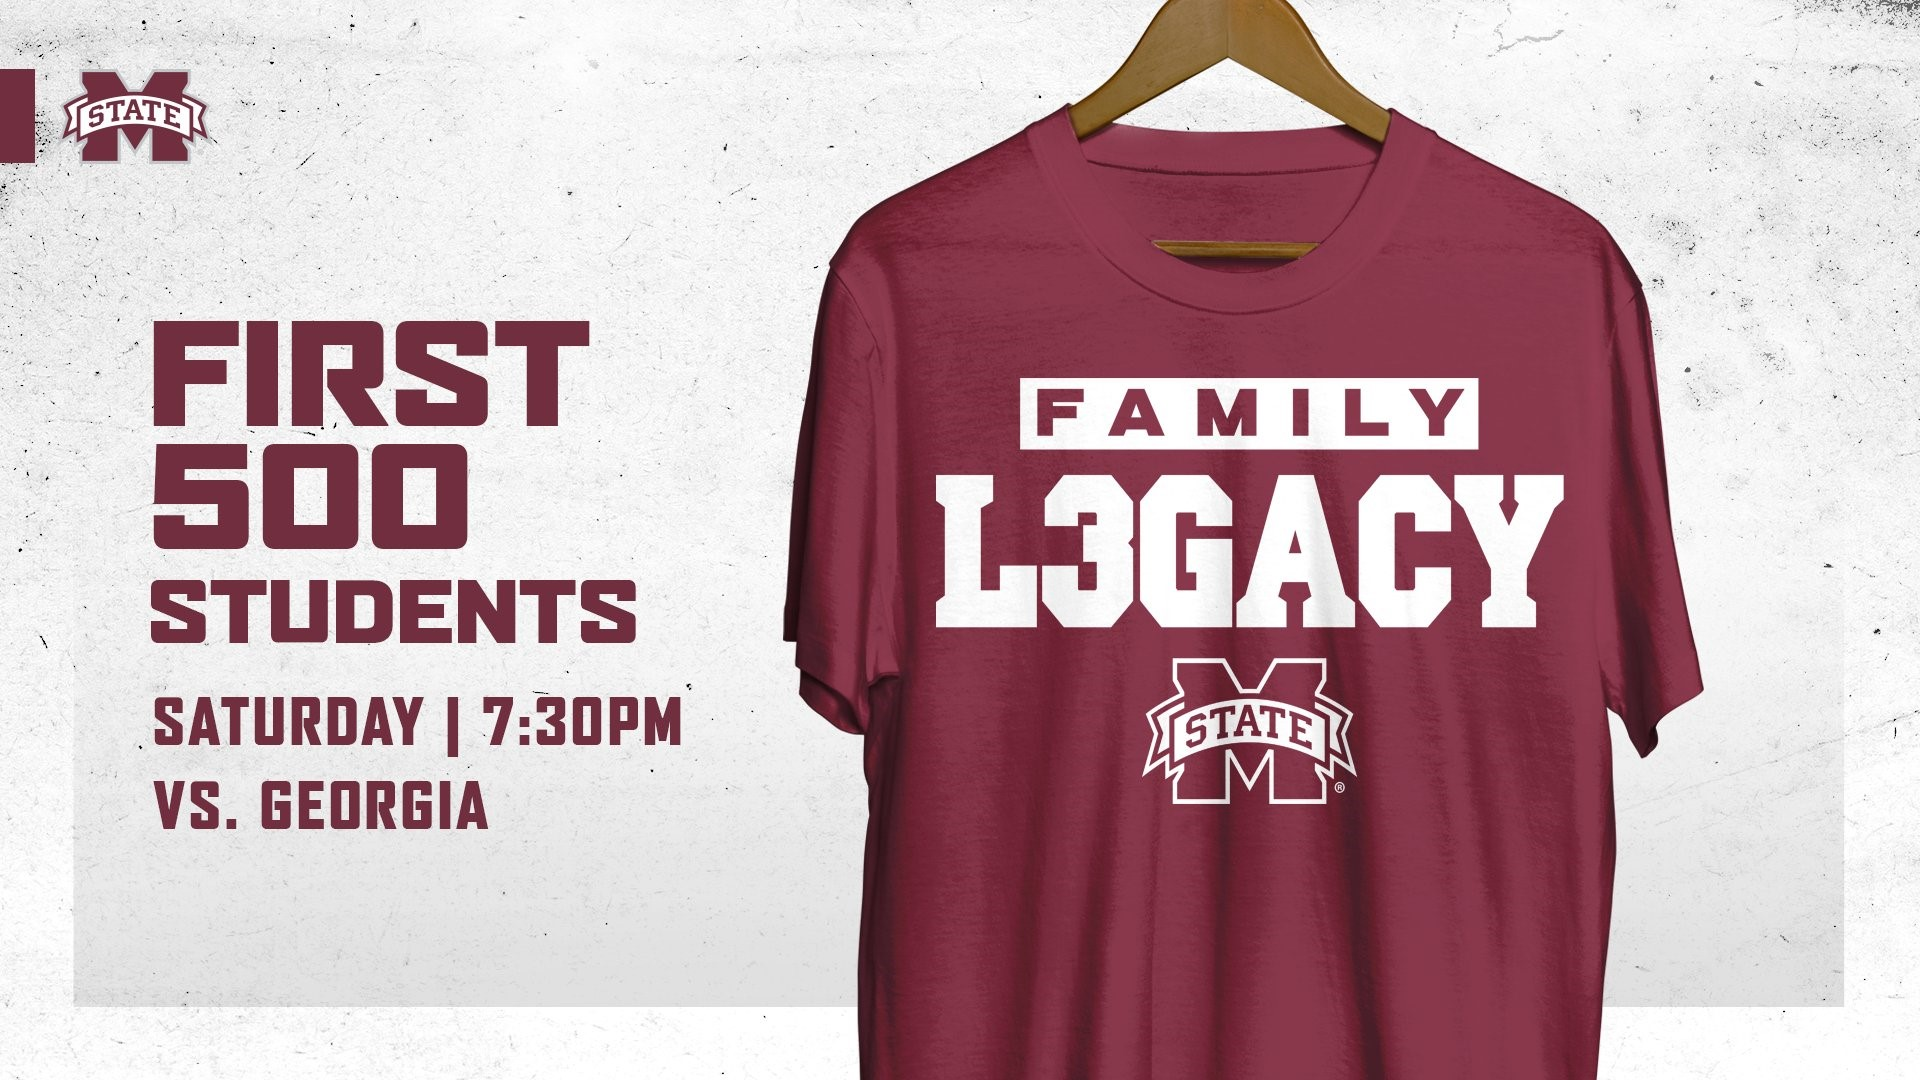 Promotional graphic for MSU men's basketball T-shirt giveaway